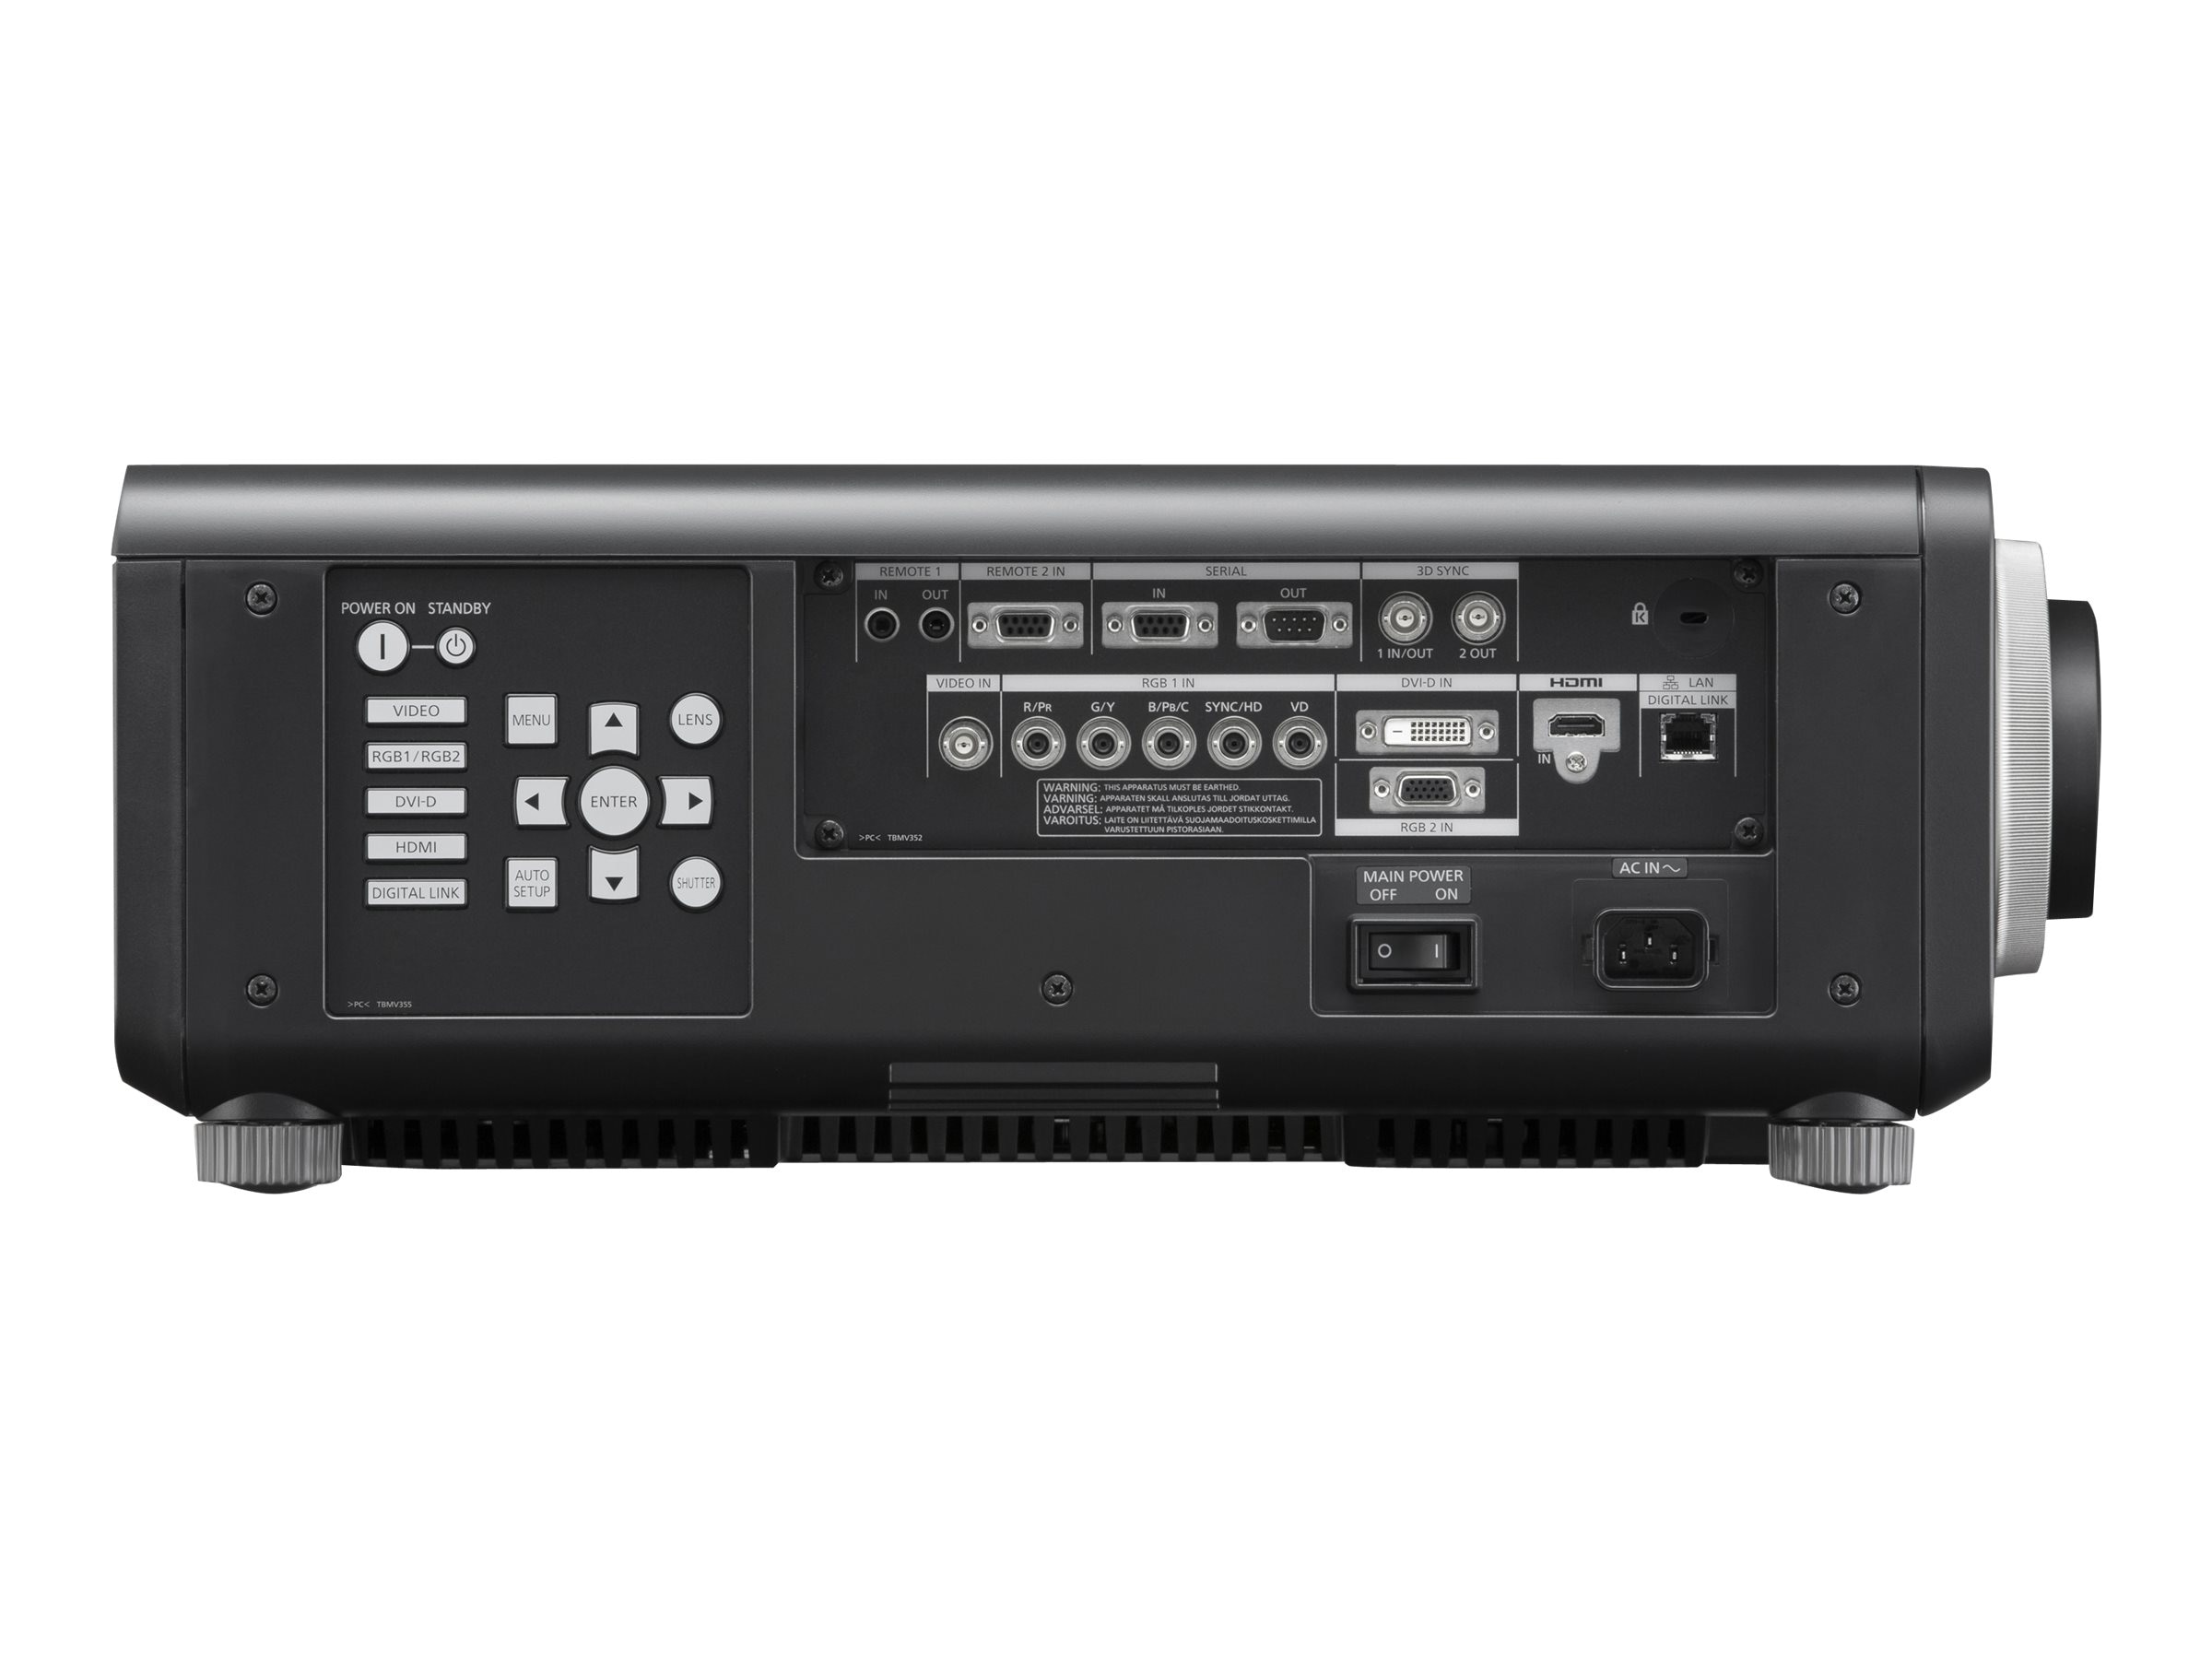 Panasonic PT-DW830UK Image 2